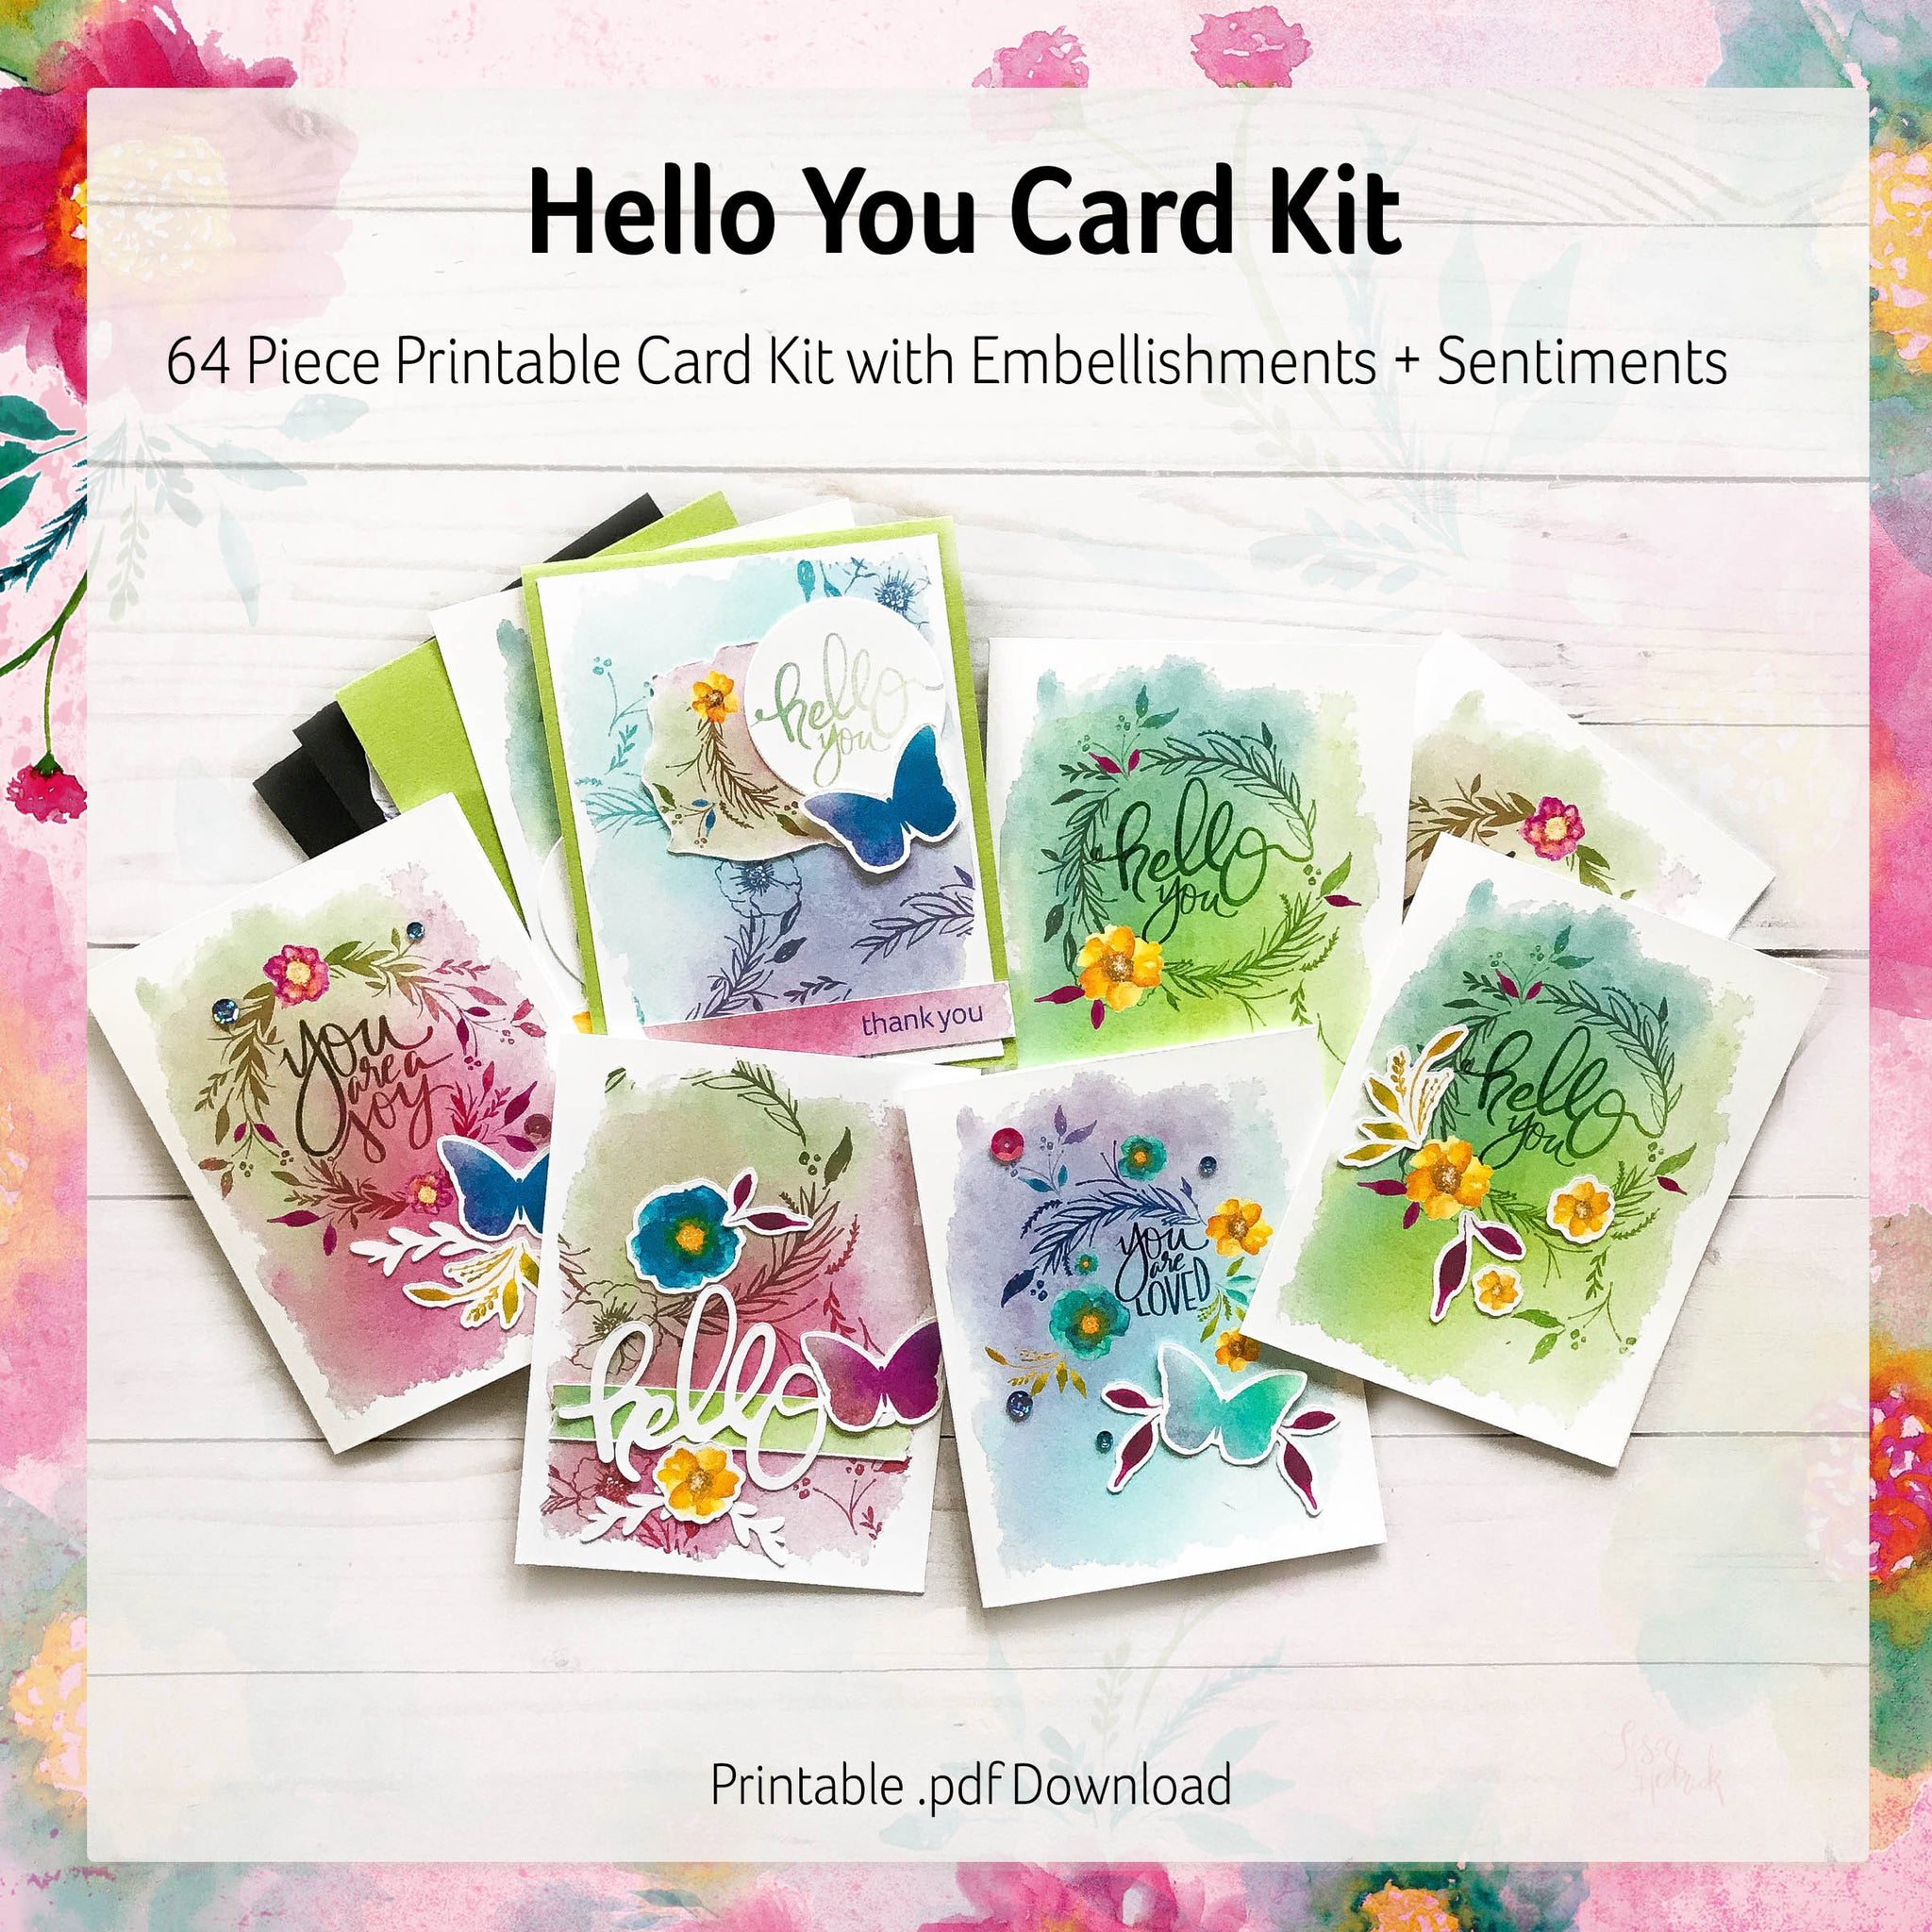 Printable Cards: Card Kit with Embellishments + Sentiments